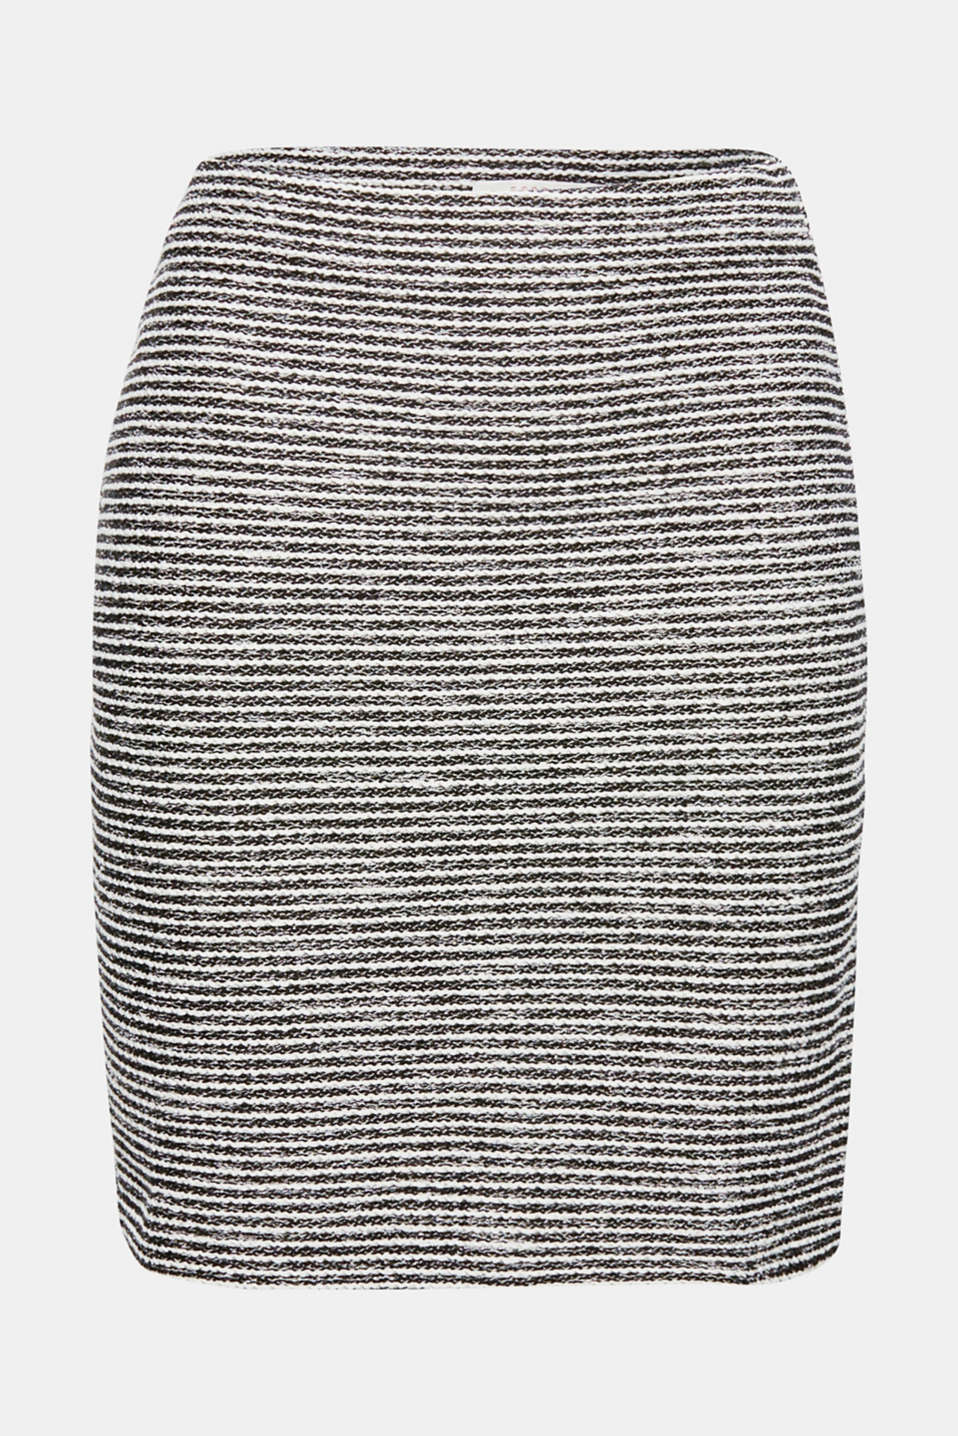 Top comfort, top style: this pencil skirt in jersey with two-tone textured stripes in a summery, bouclé look offers both!